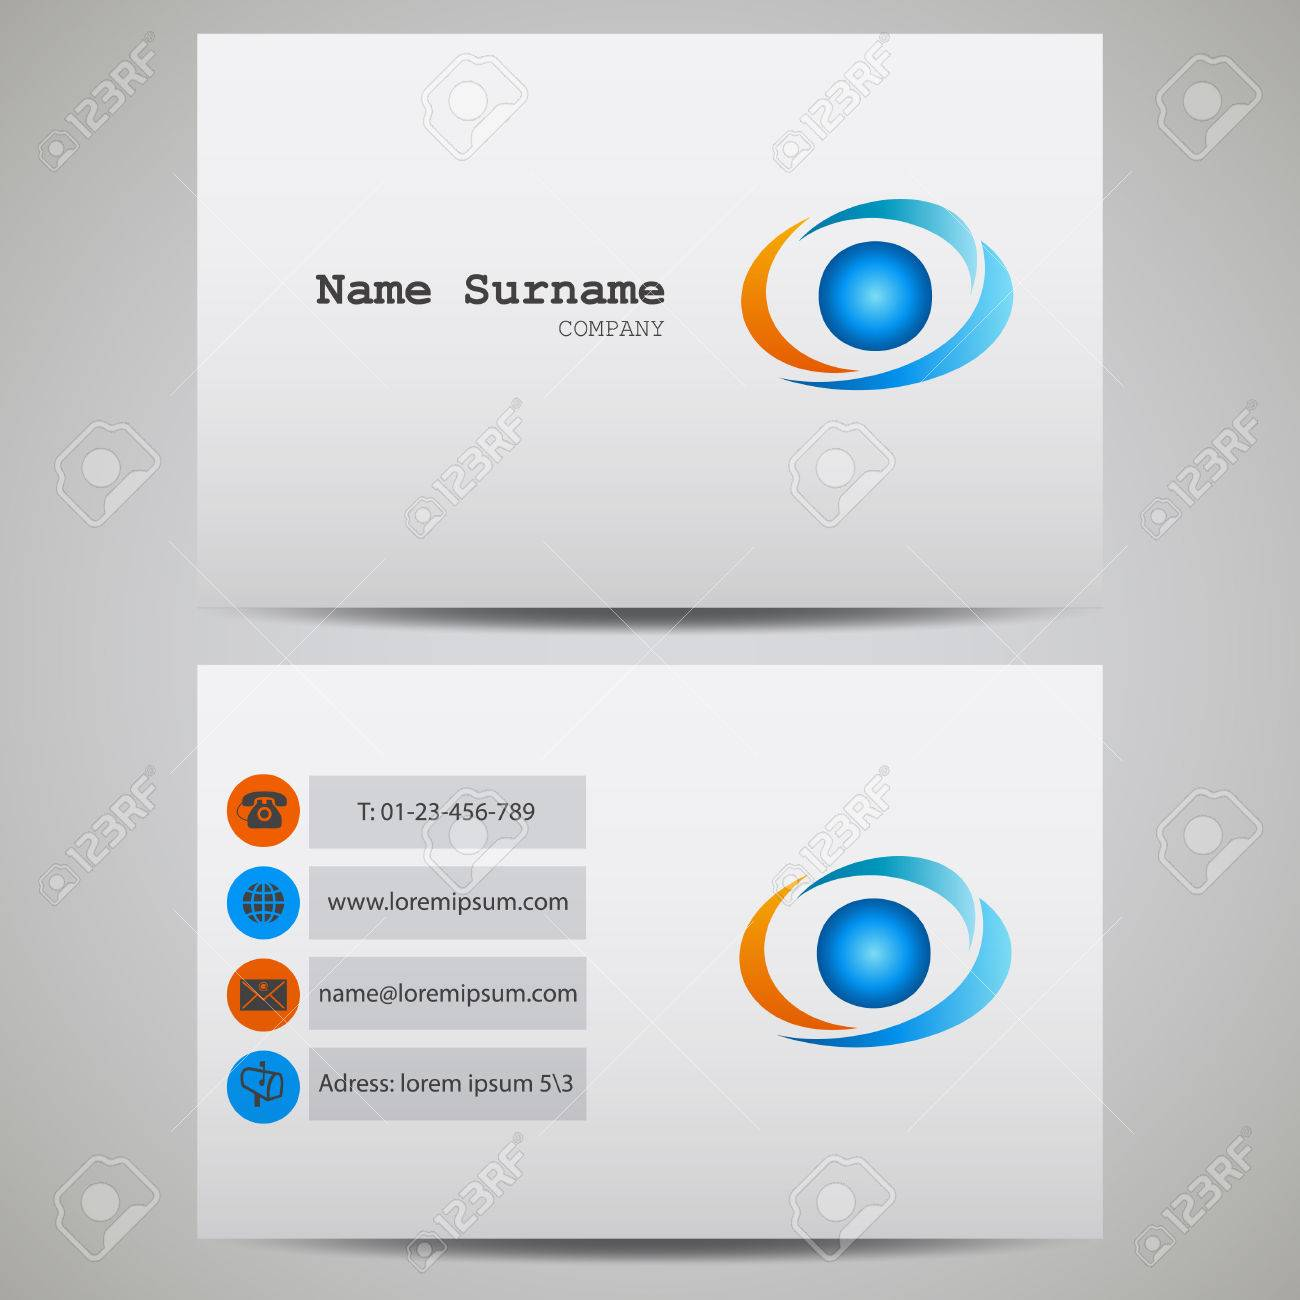 Business card software for apple image collections card design and fine apple business card templates gallery business card ideas business card software for apple images card fbccfo Choice Image